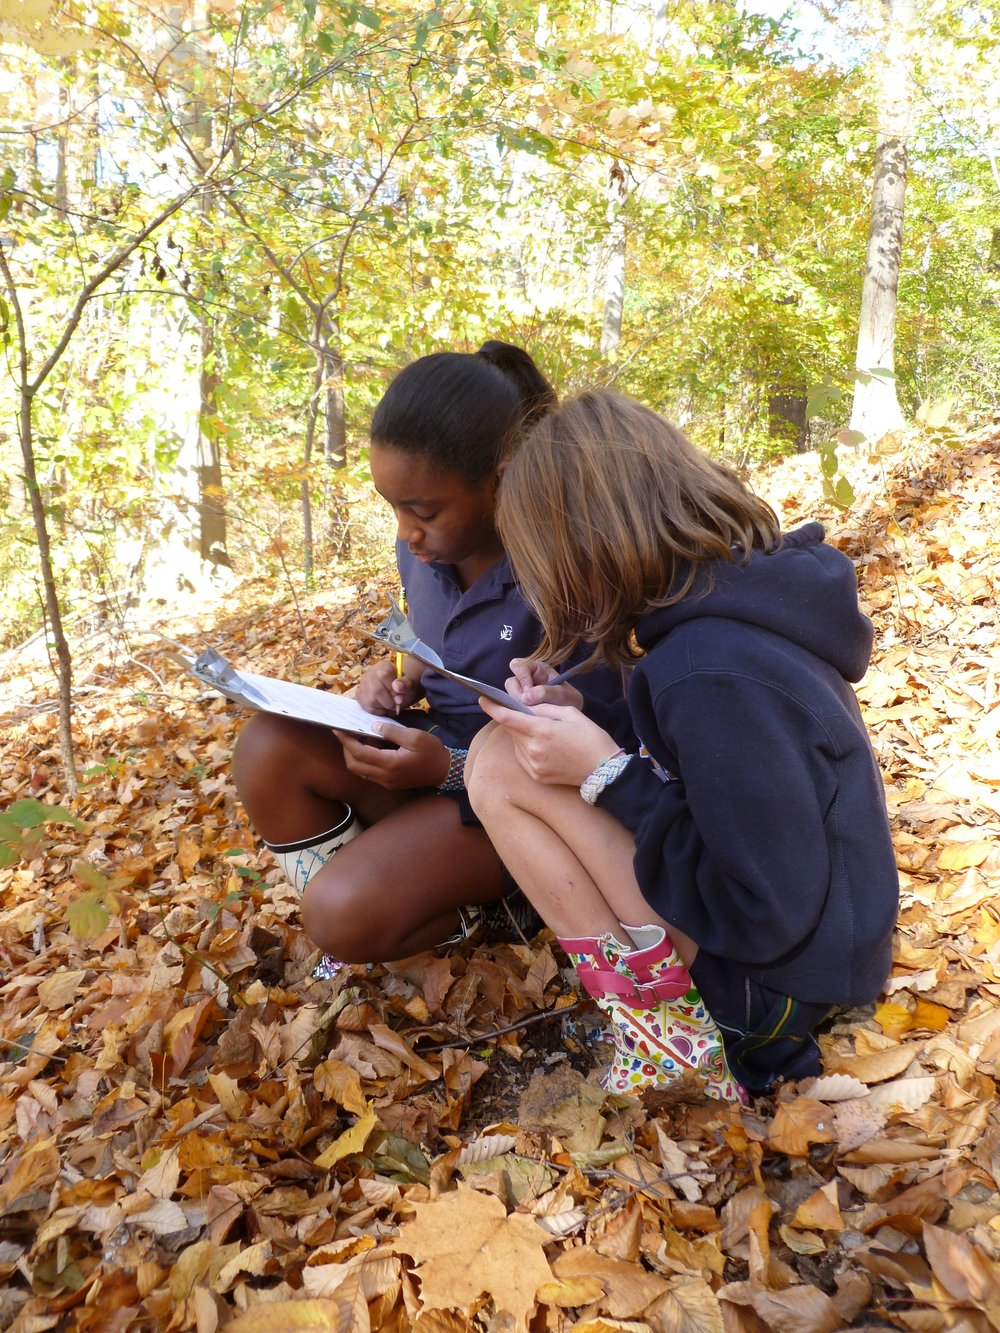 Middle School Students use observation and drawing skills in an outdoor science class.